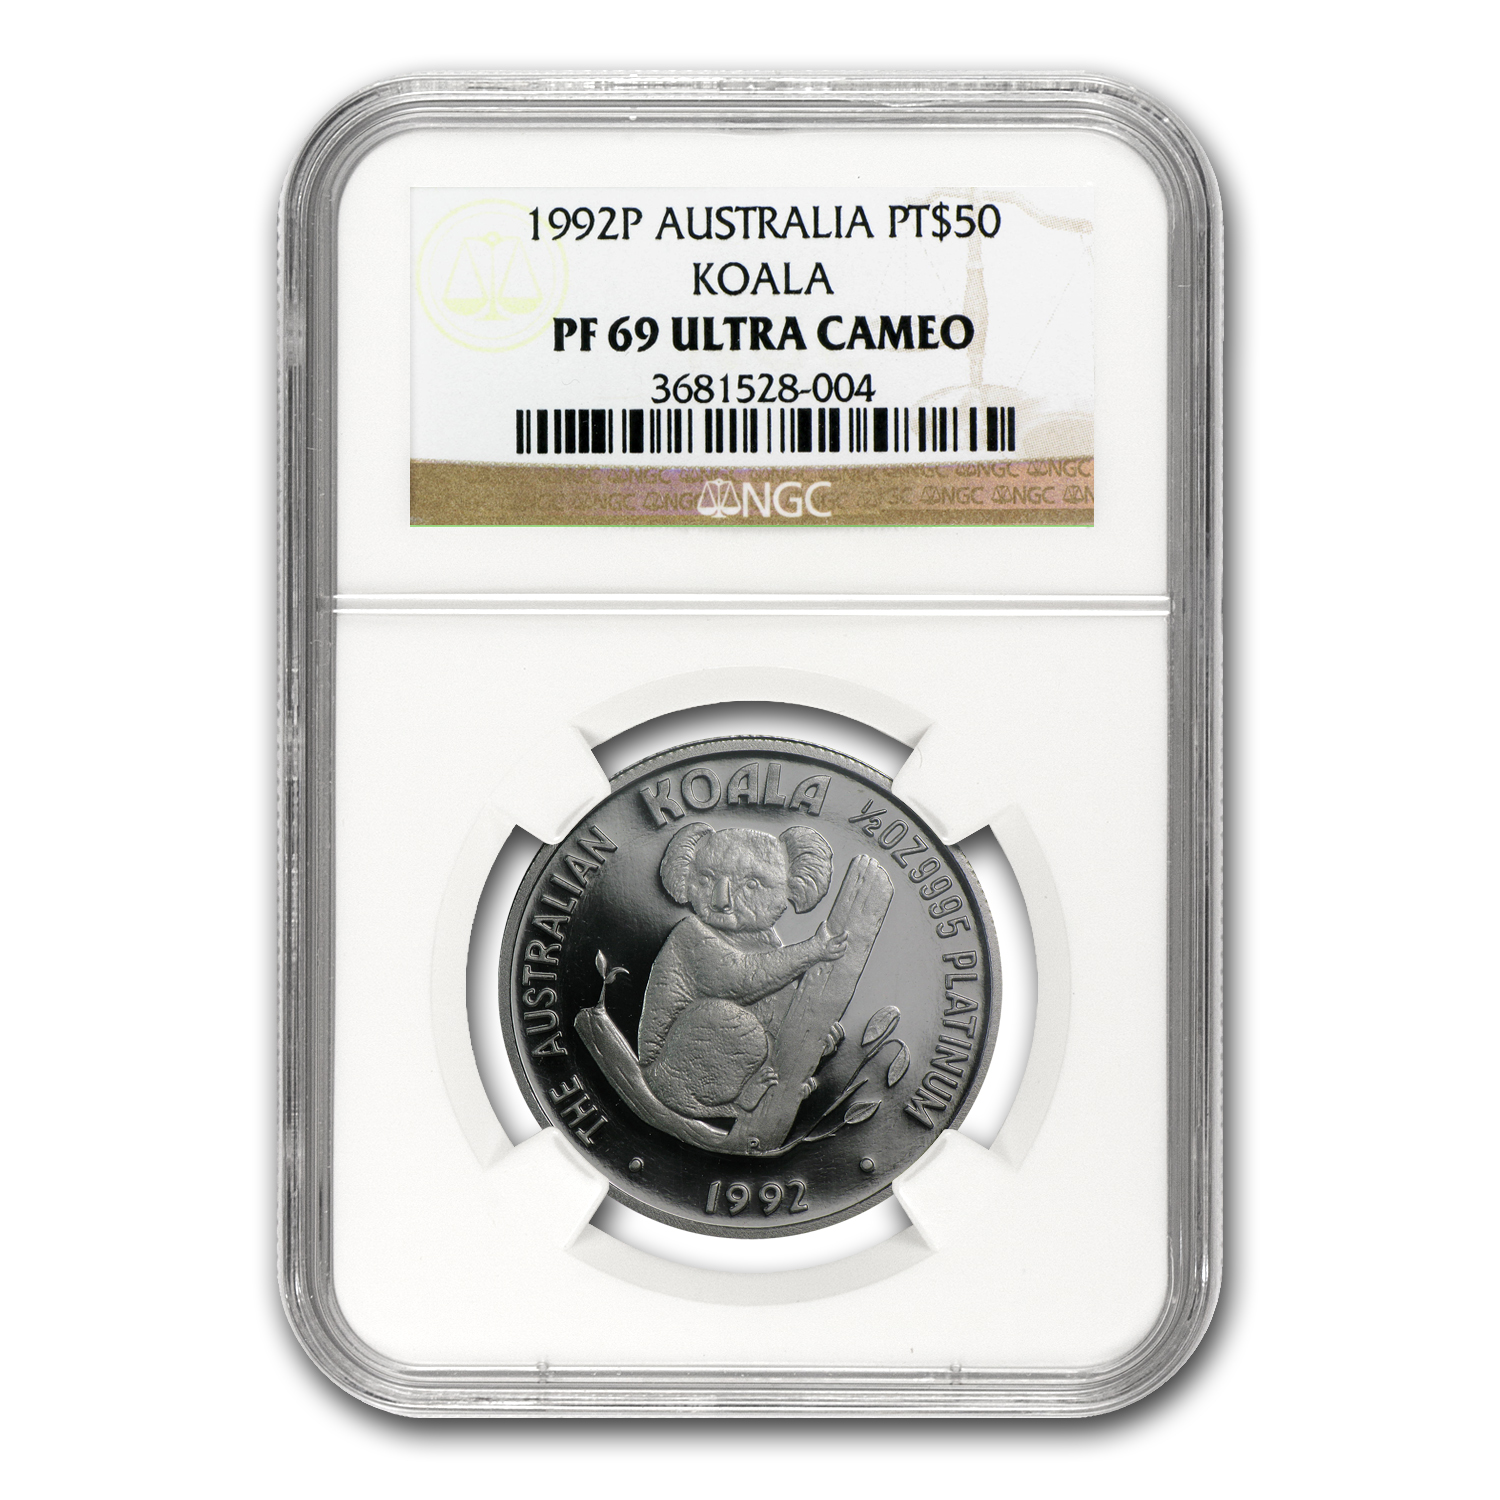 1992 Australia 1/2 oz Proof Platinum Koala PF-69 NGC